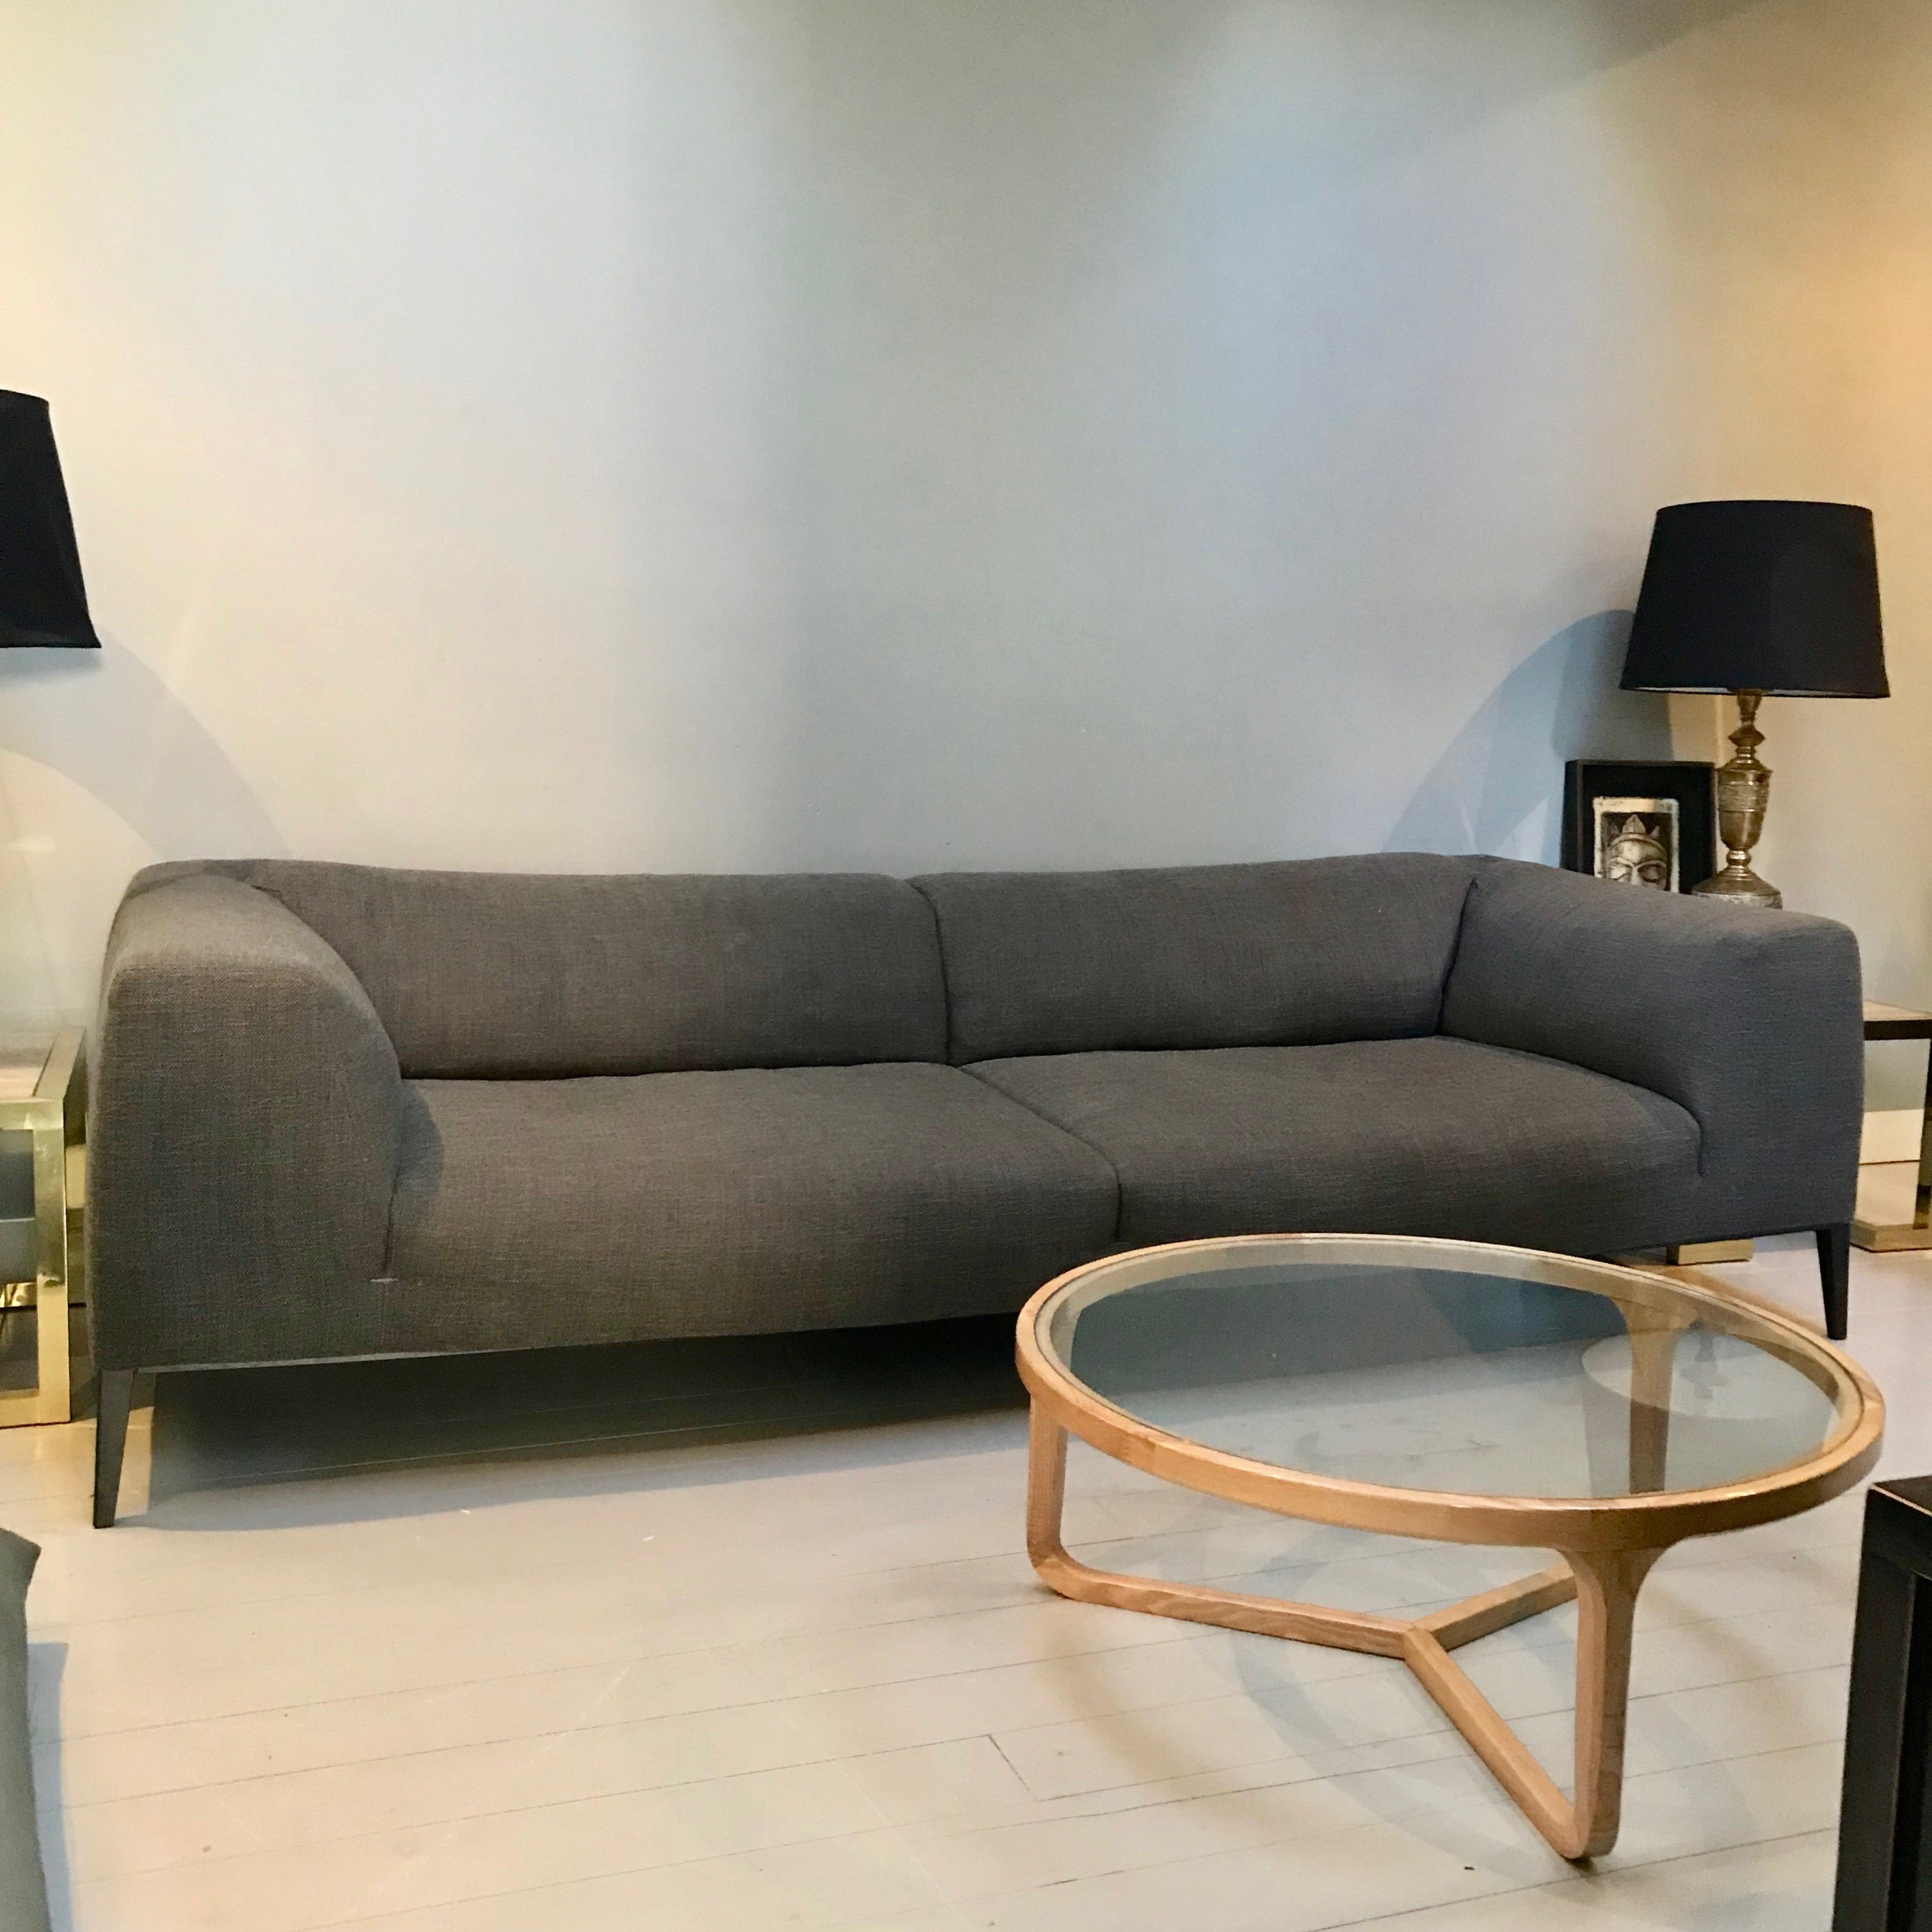 Metropolitan Sofa by Jean-Marie Massaud for Poliform